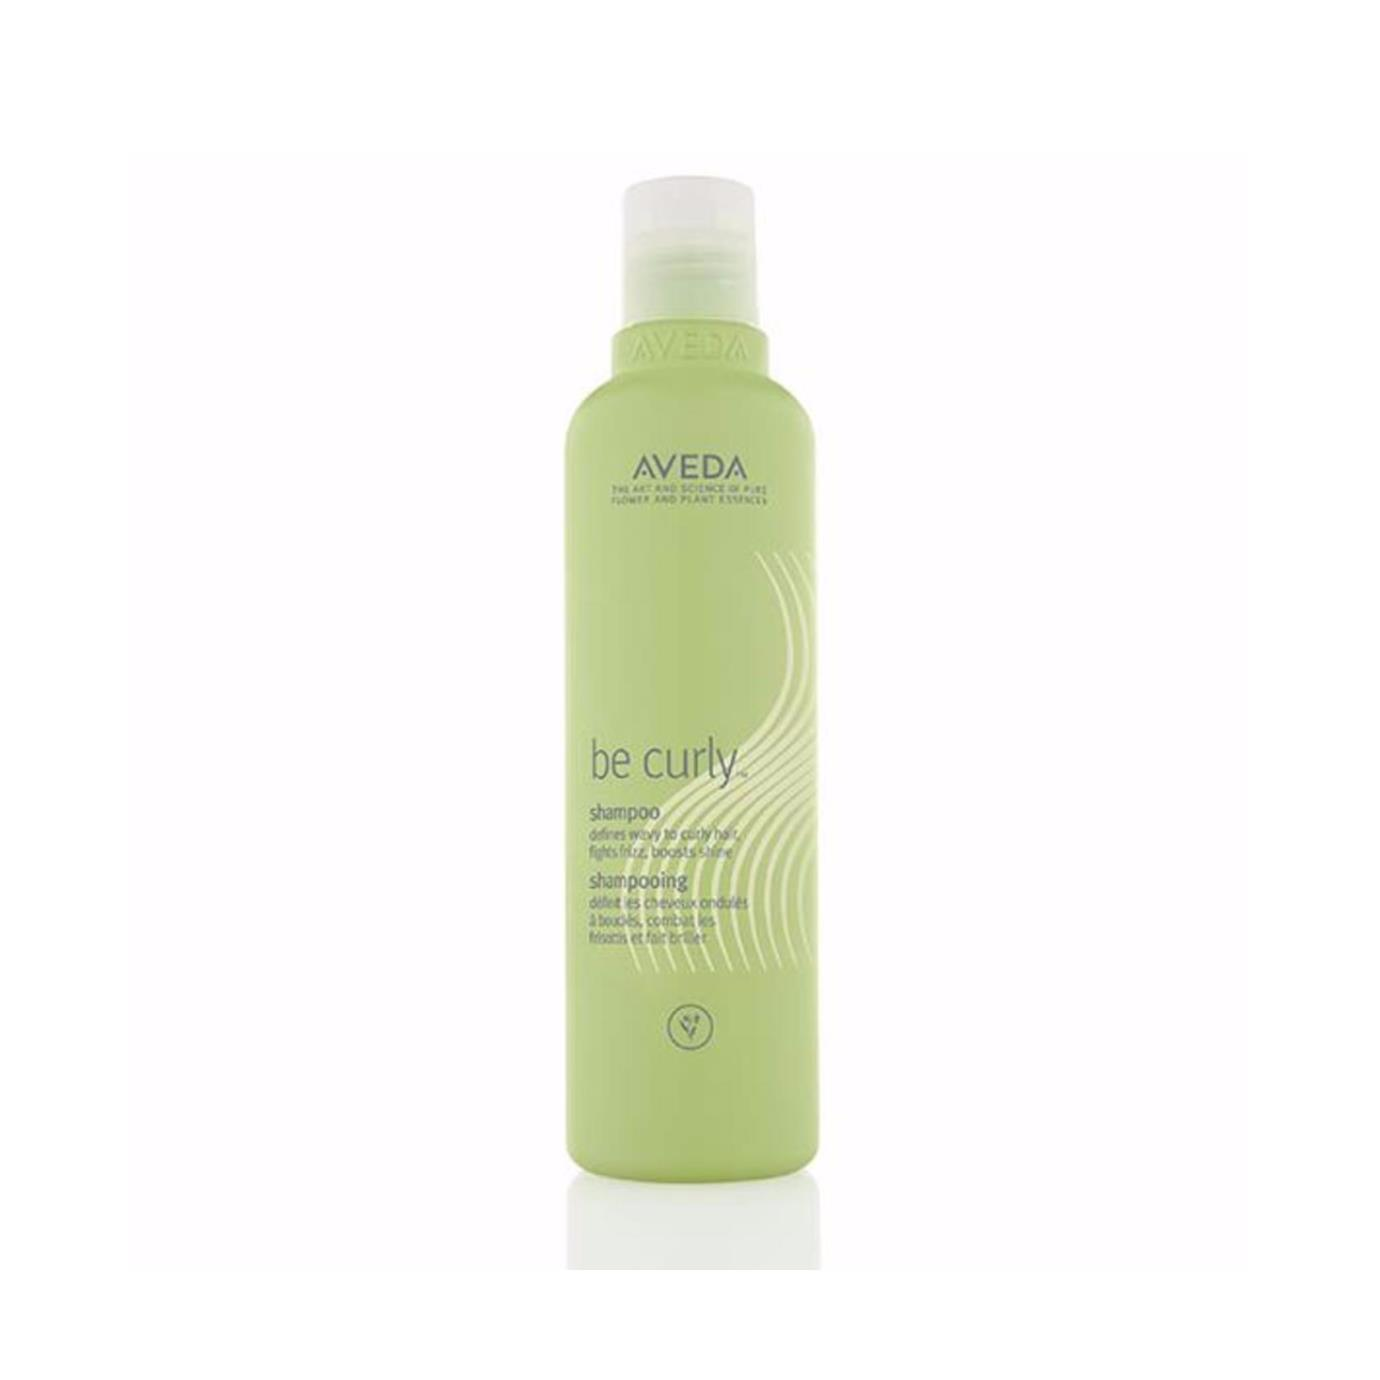 Aveda Be Curly Shampoo $31.50 (250ml)   Gently cleanse your waves or curls—and define them with a wheat protein and organic aloe blend that expands when hair is wet and retracts when hair is dry—taming frizz and increasing shine.  Aveda's own pure-fume aroma with certified organic lemon, bergamot, orange and other pure flower and plant essences.   (purchase in store only)